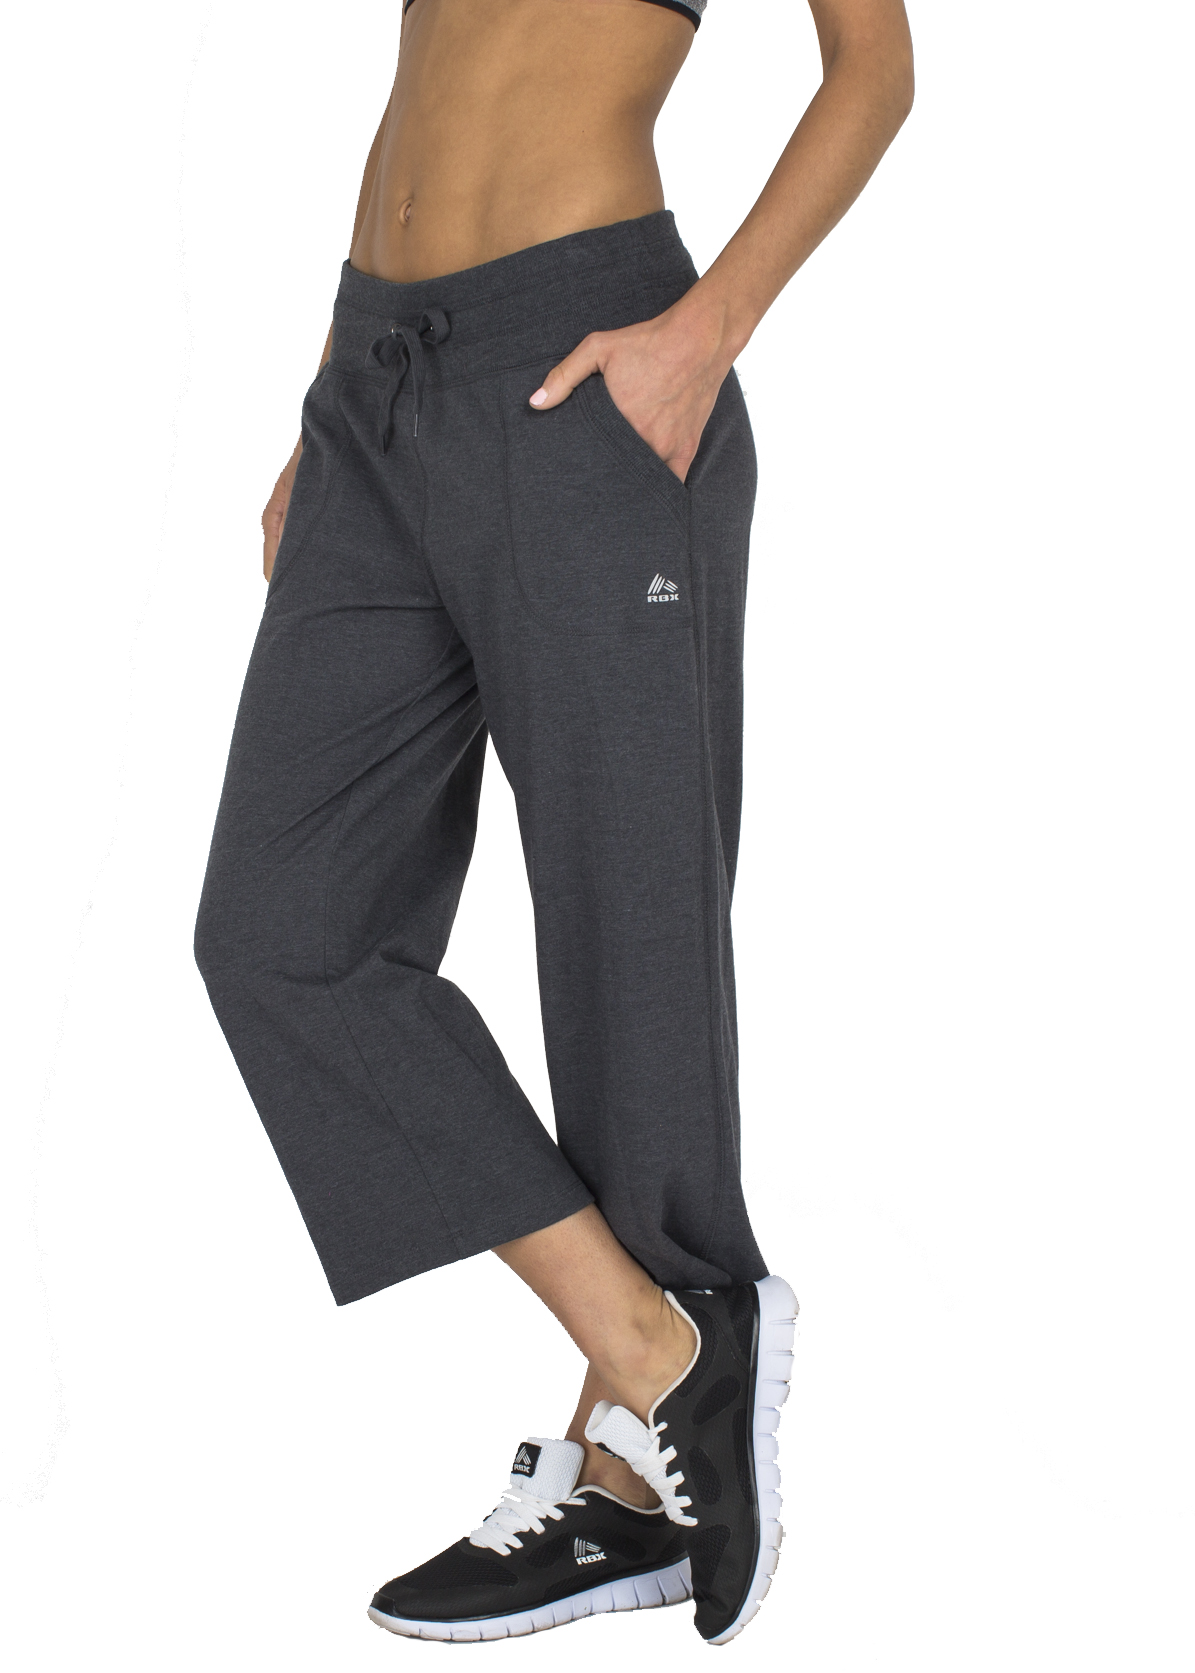 RBX Active Women's Relaxed Fit Cotton Capri Pant w/ Dual Pockets